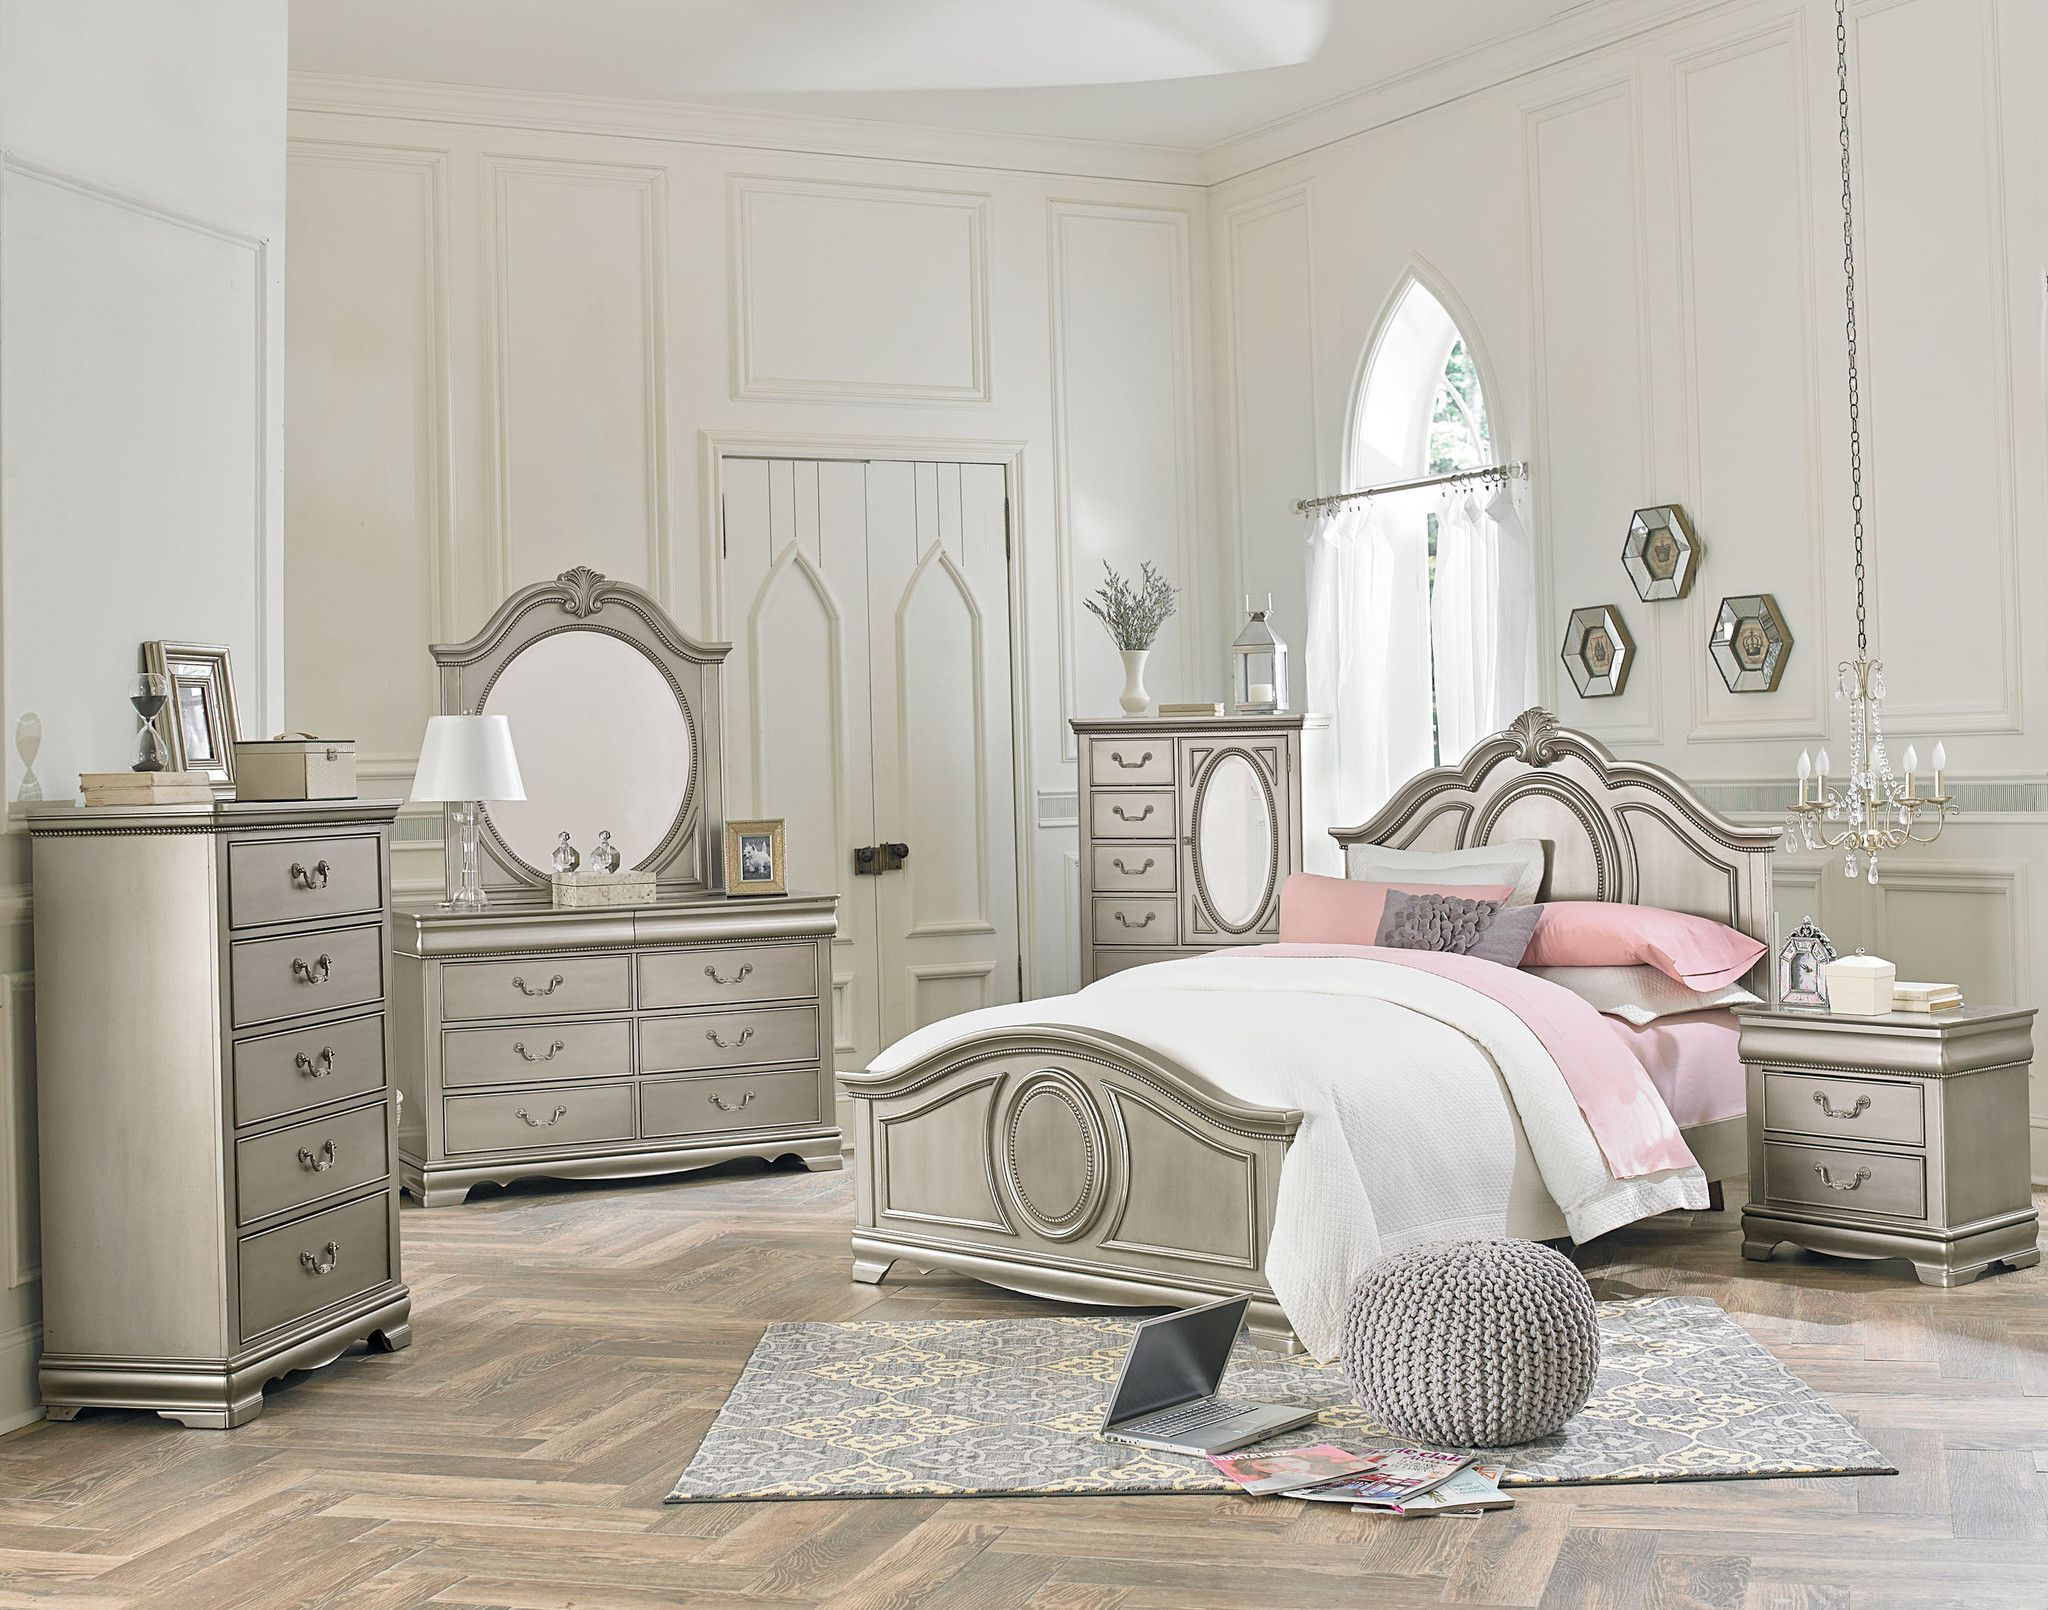 Beautiful Jessicau0027s Charming Cottage Details Are Given A Posh Silver Finish That Will  Add A Glamorous Touch · Tween Bedroom IdeasBedroom ... Good Looking